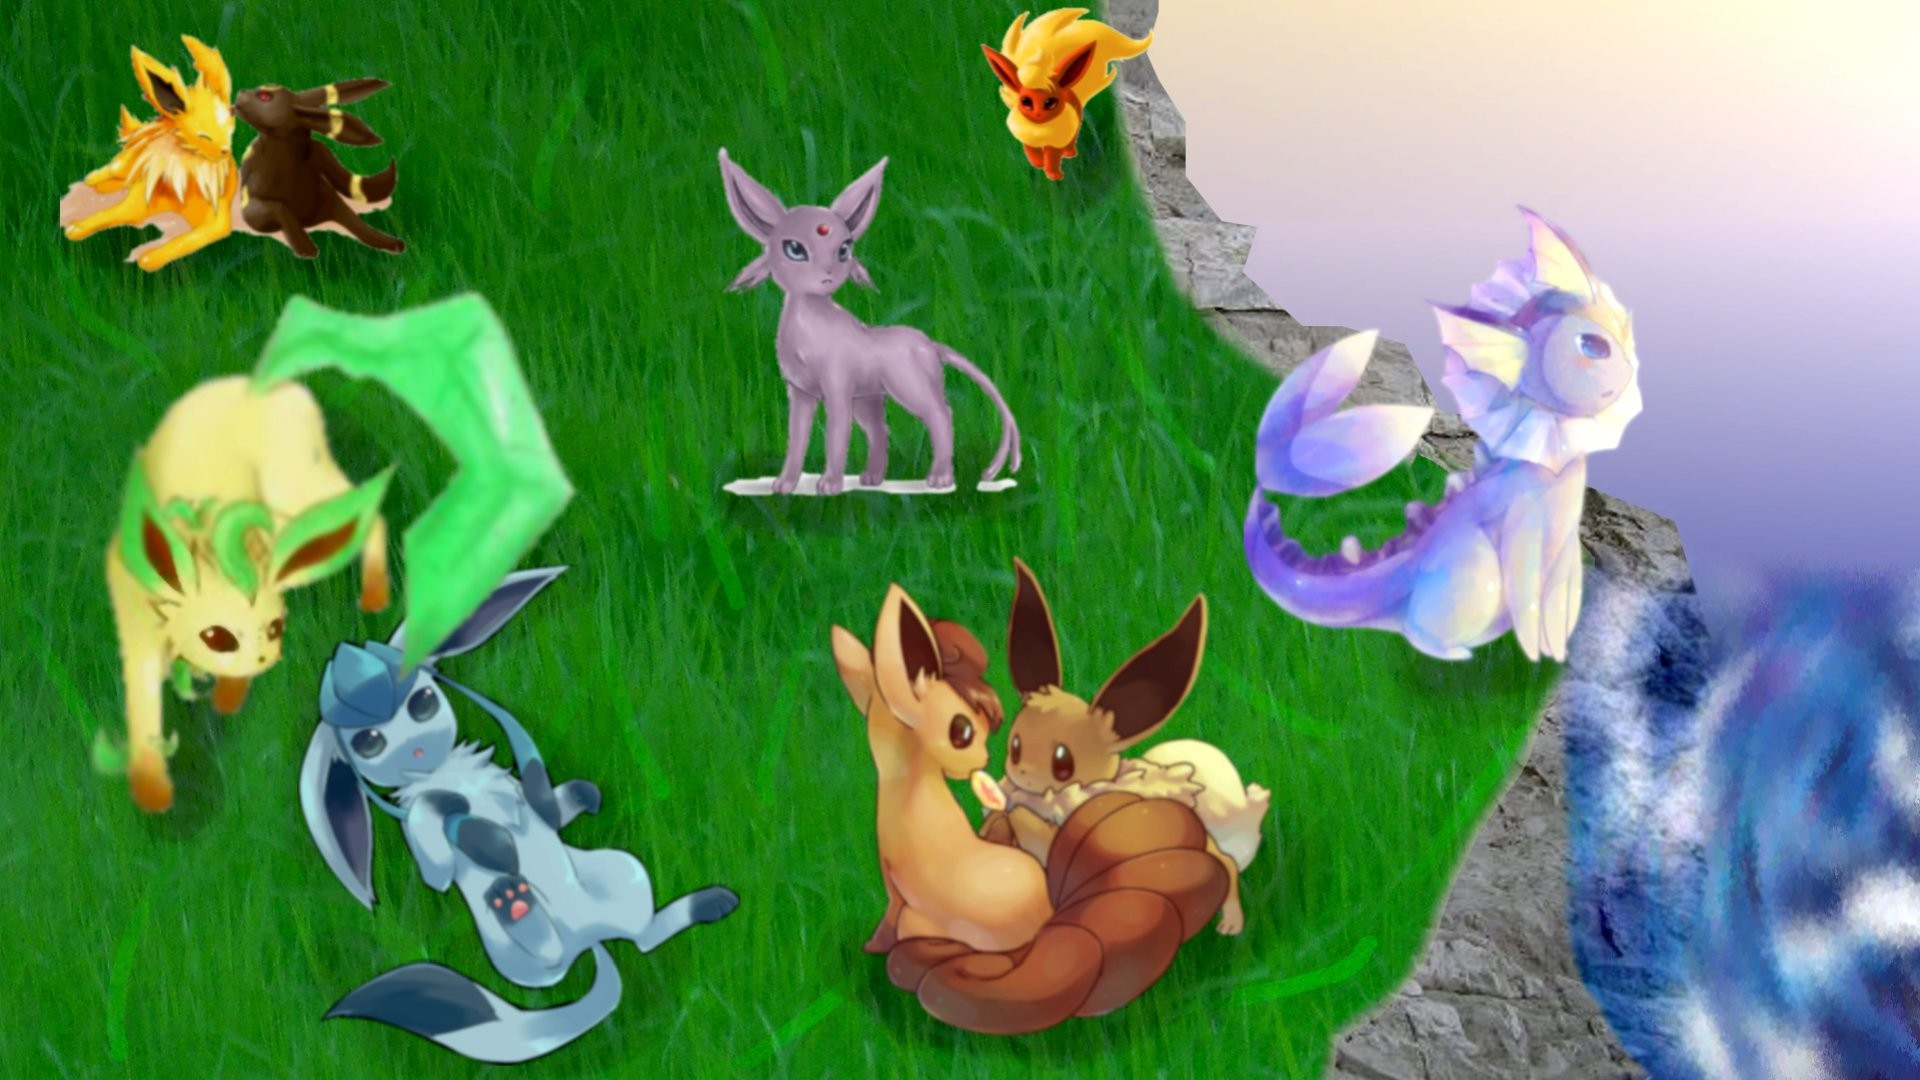 … Eevee and his evolutions with Vulpix by Valyli